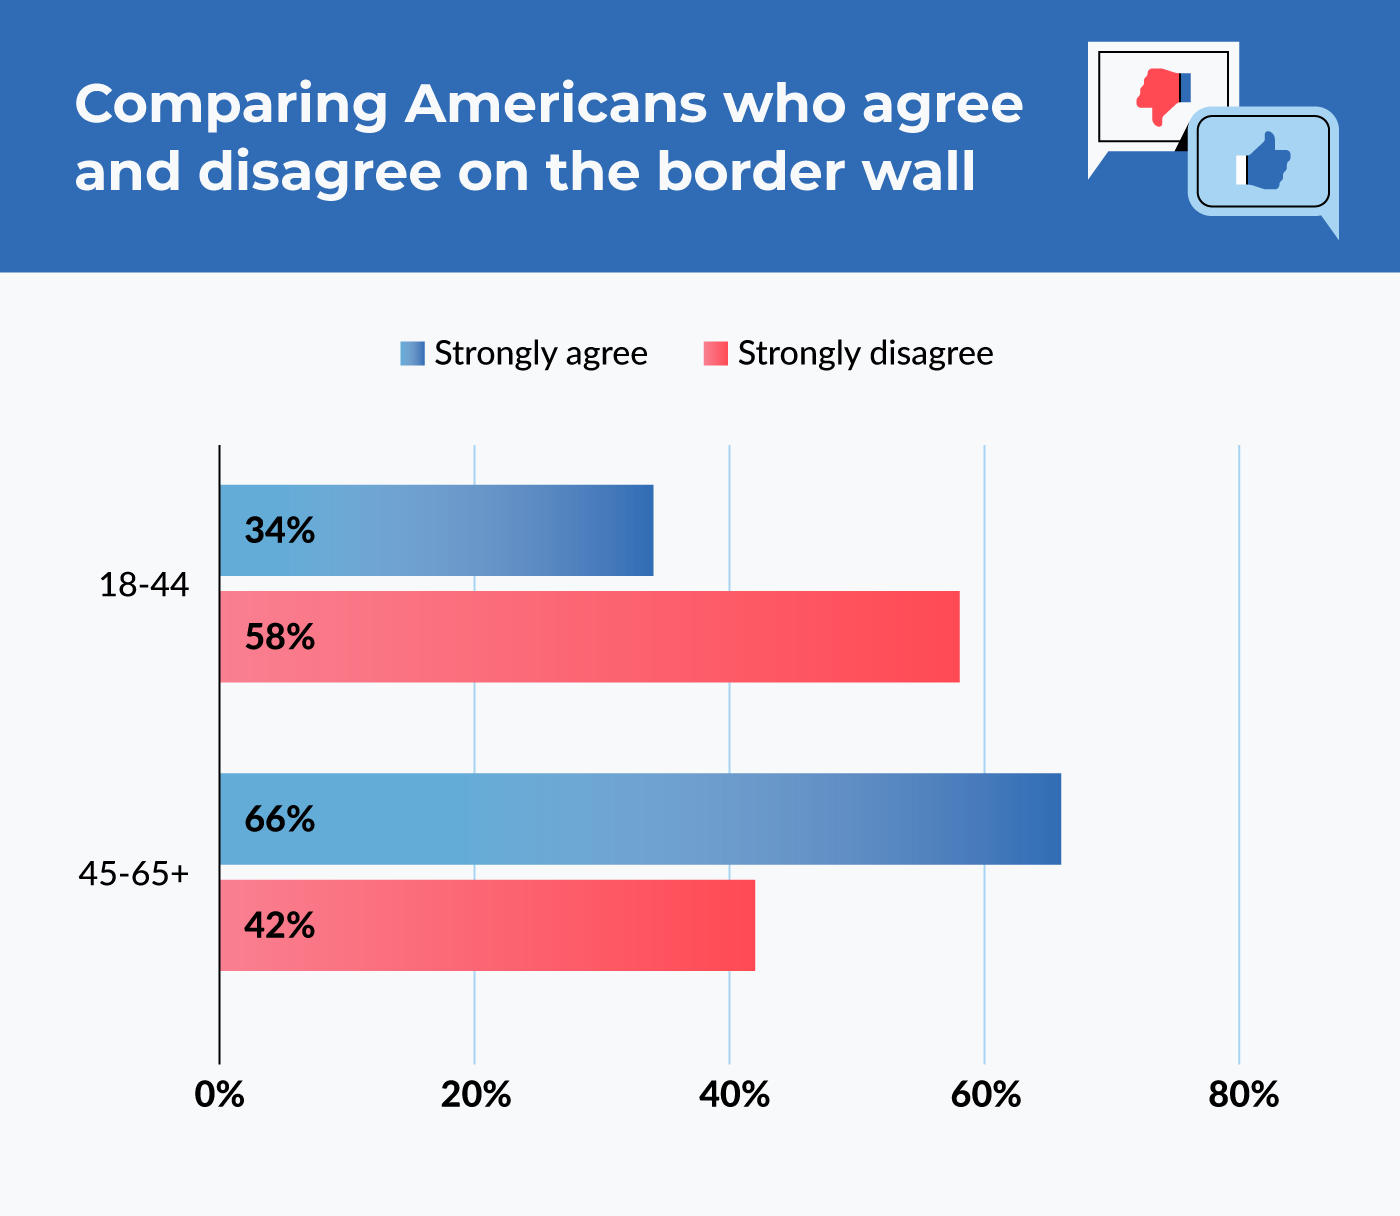 comparing Americans who agree and disagree on the border wall